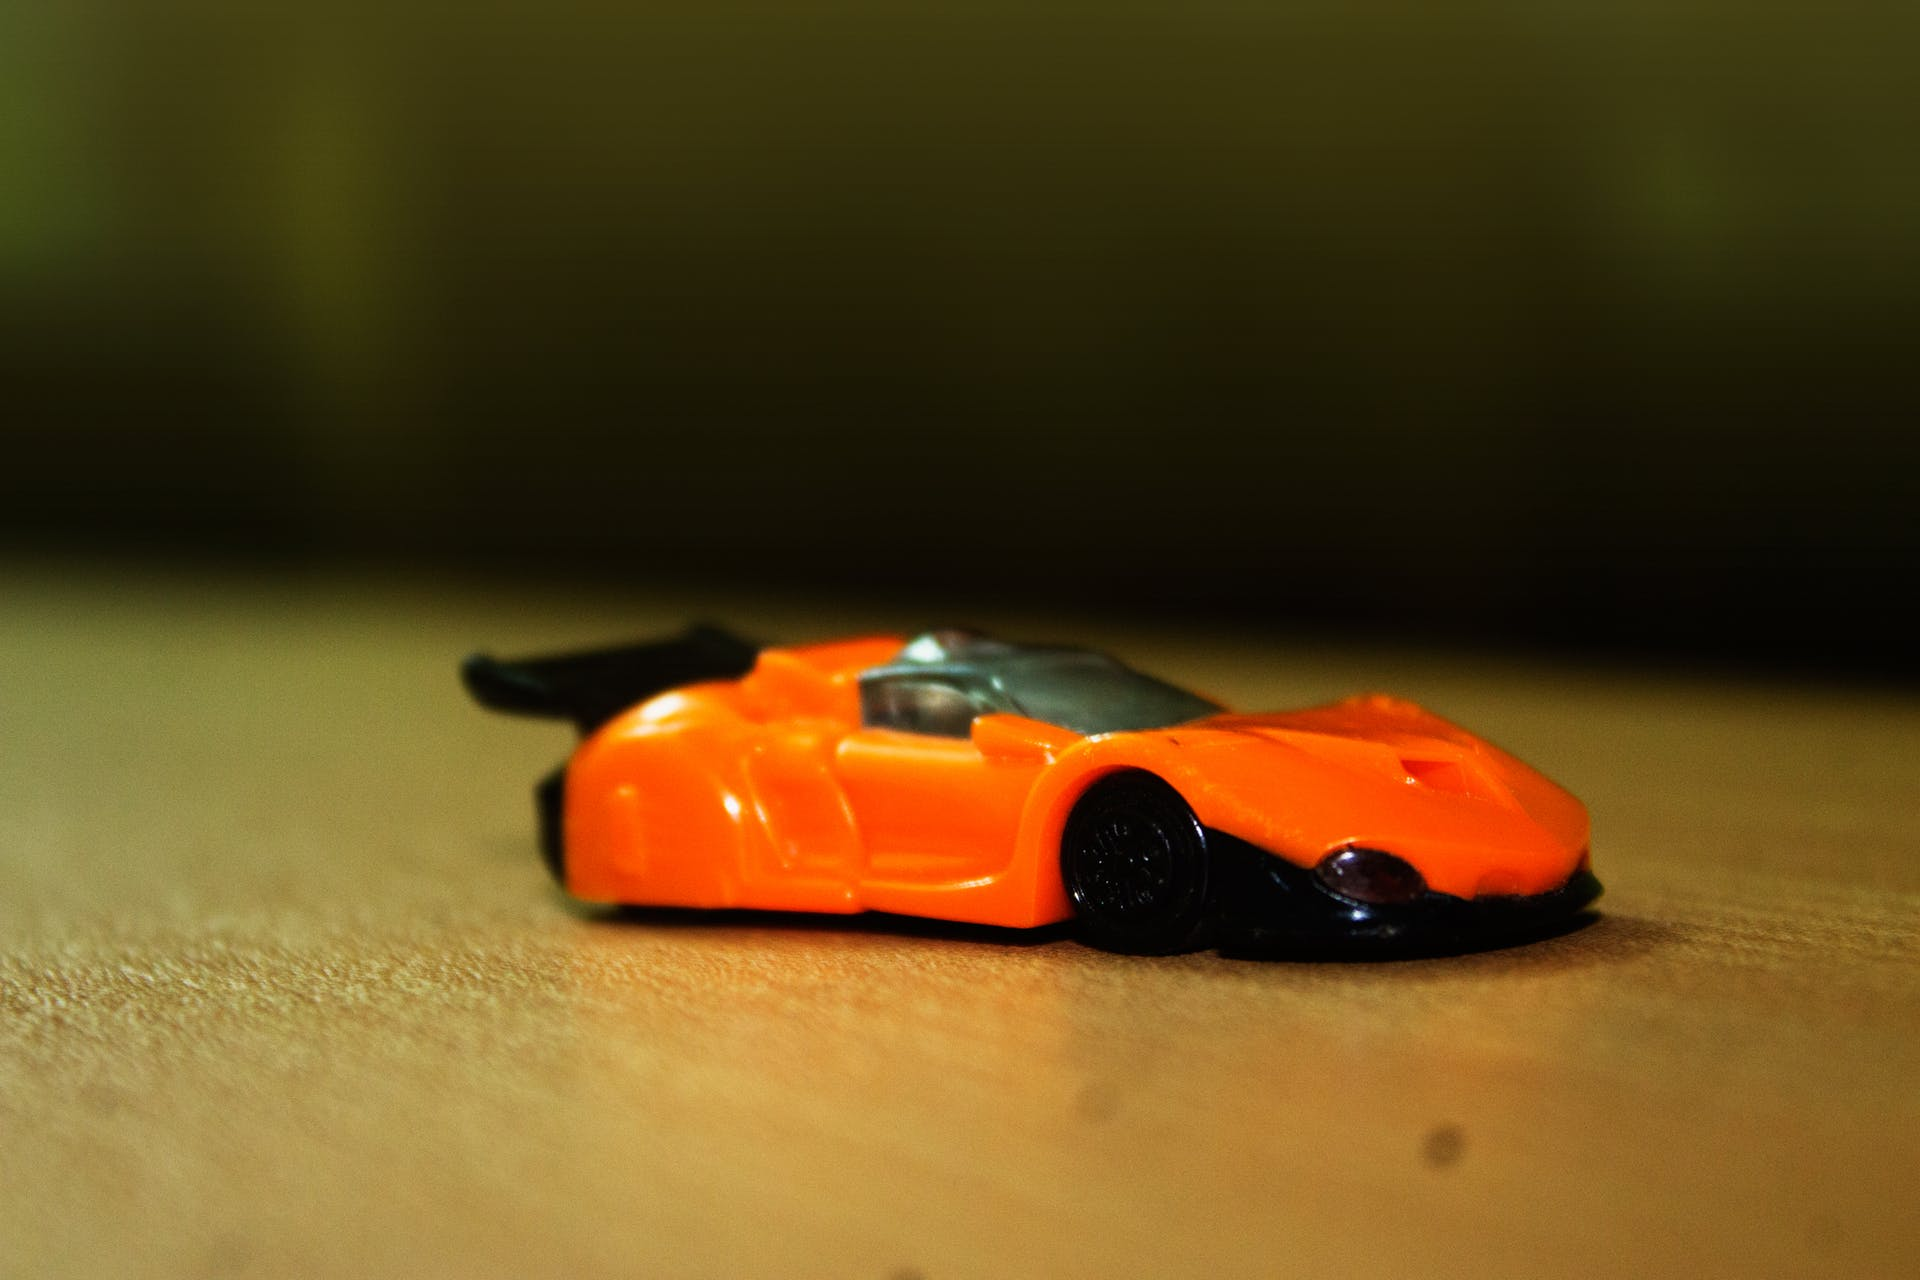 cool wallpapers car minature photography toys